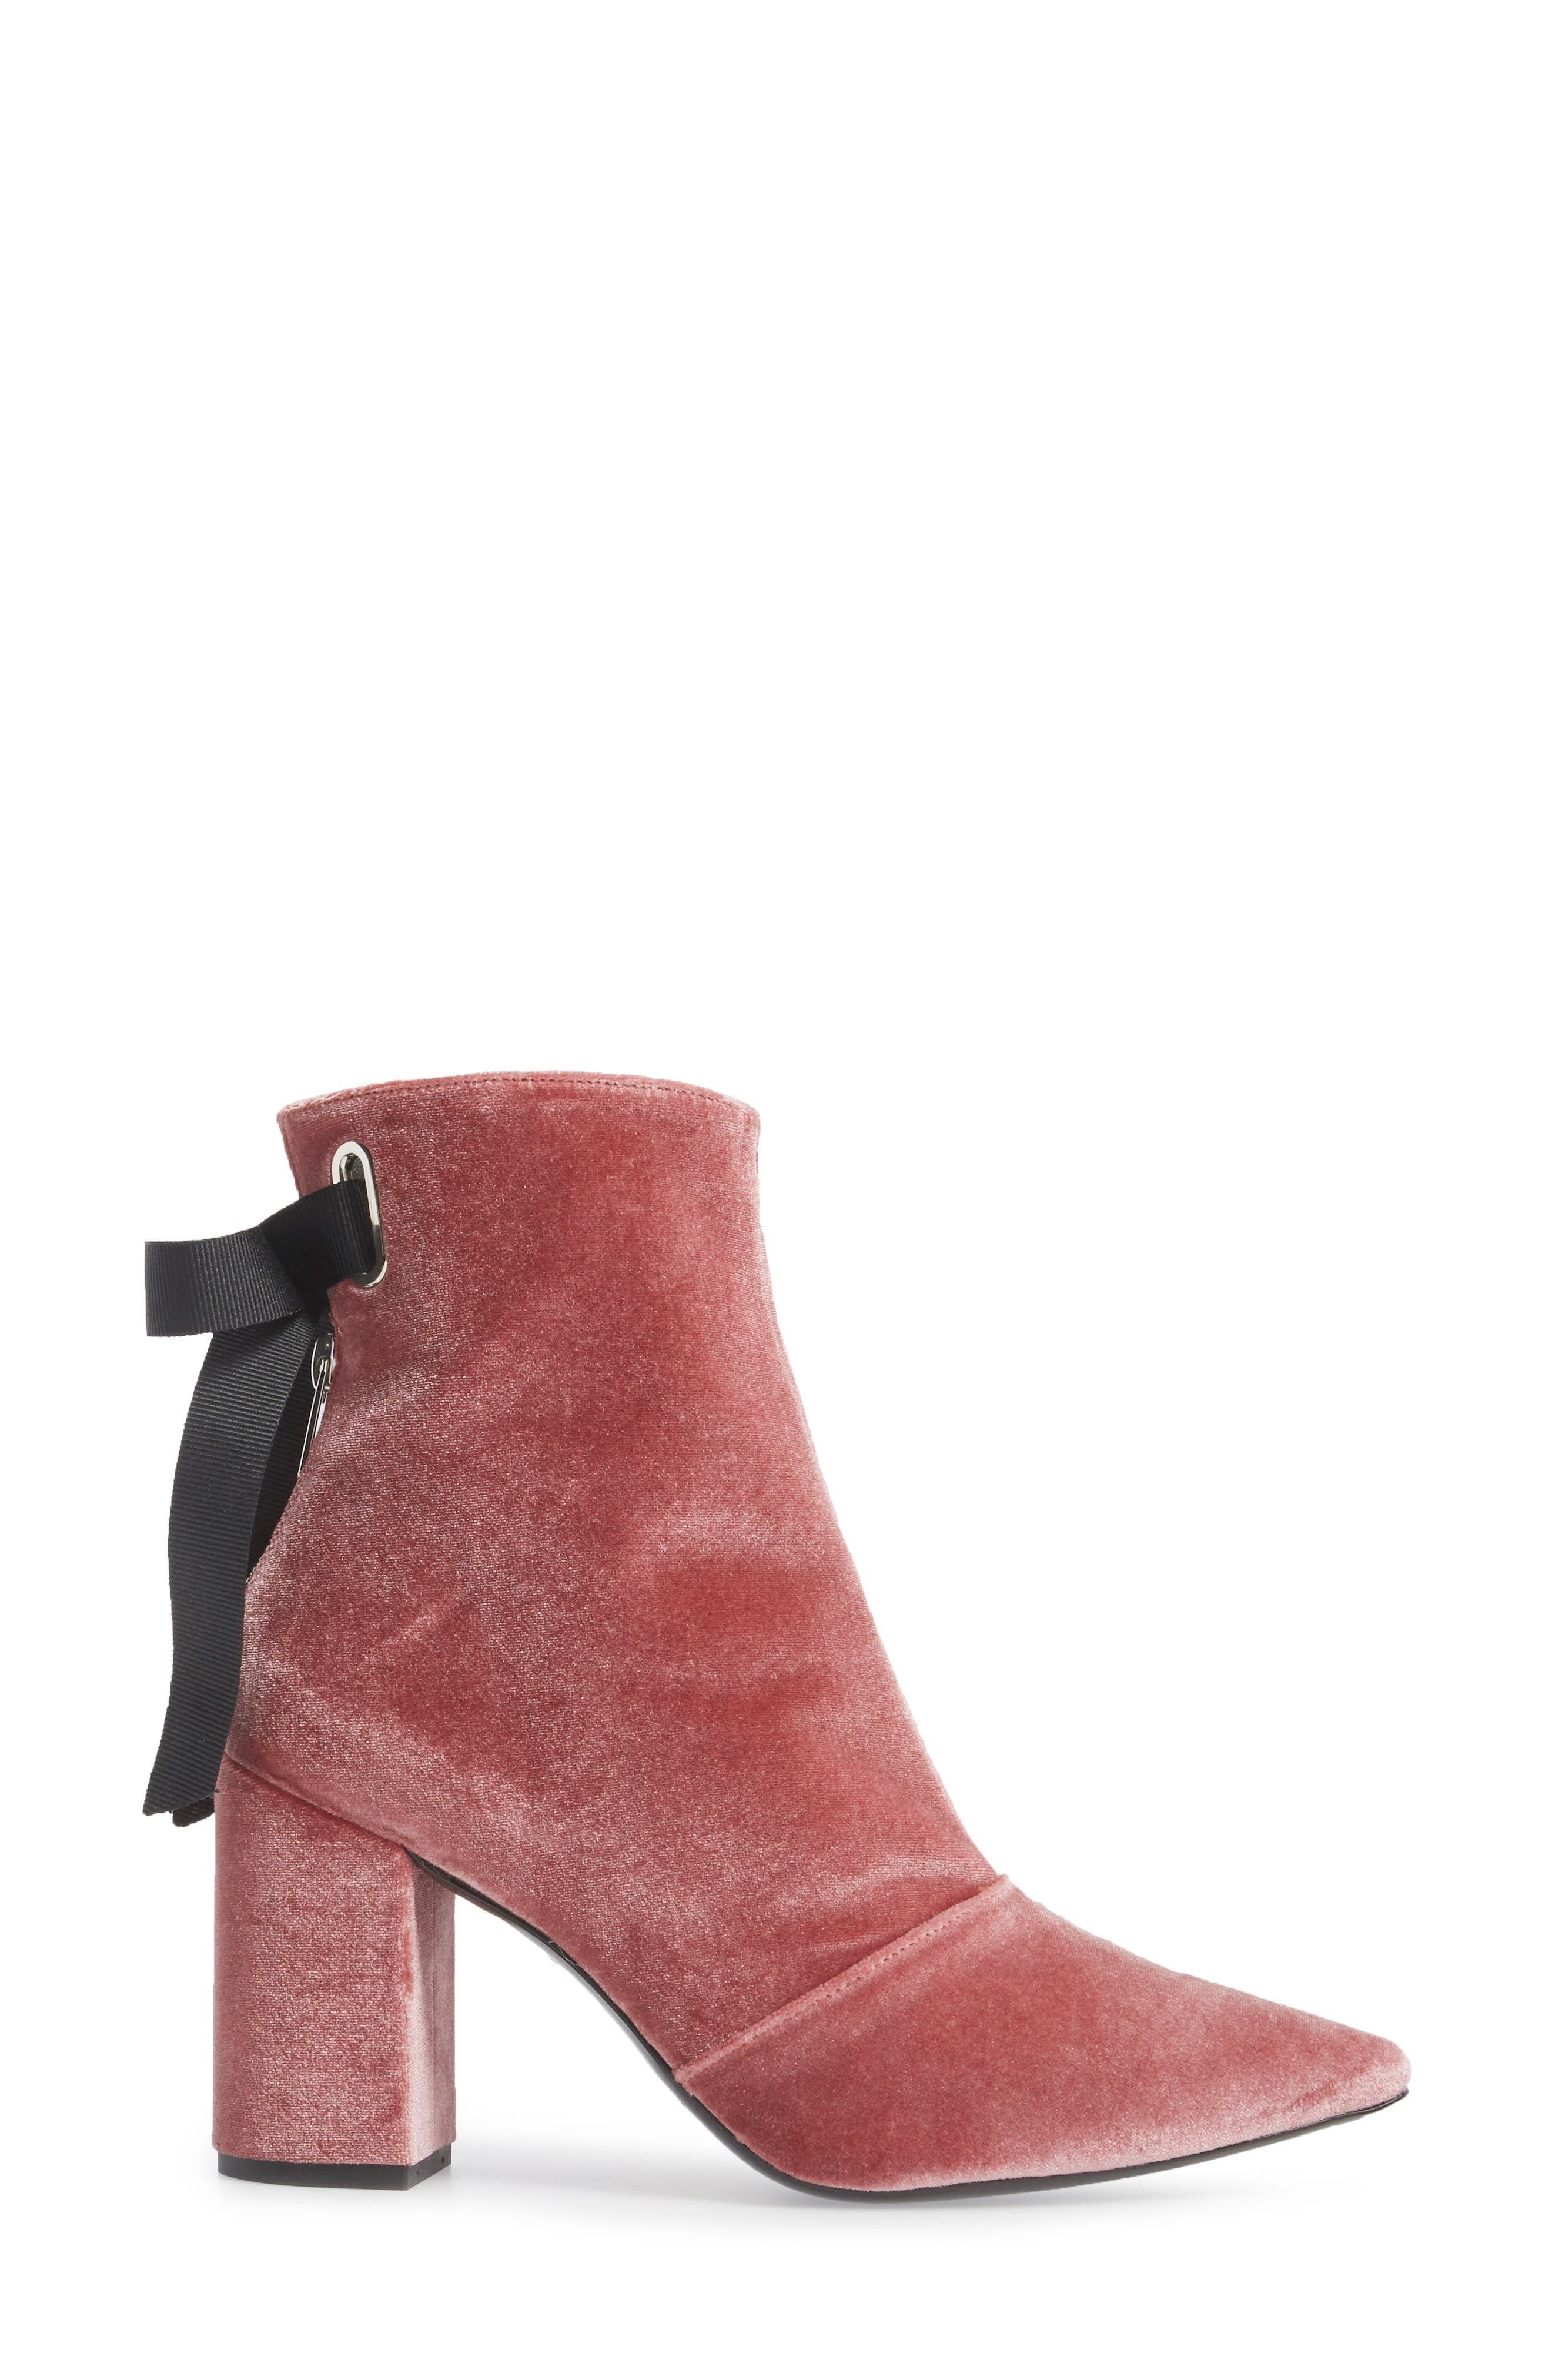 x Self-Portrait Karlit Pointy Toe Bootie,                             Alternate thumbnail 3, color,